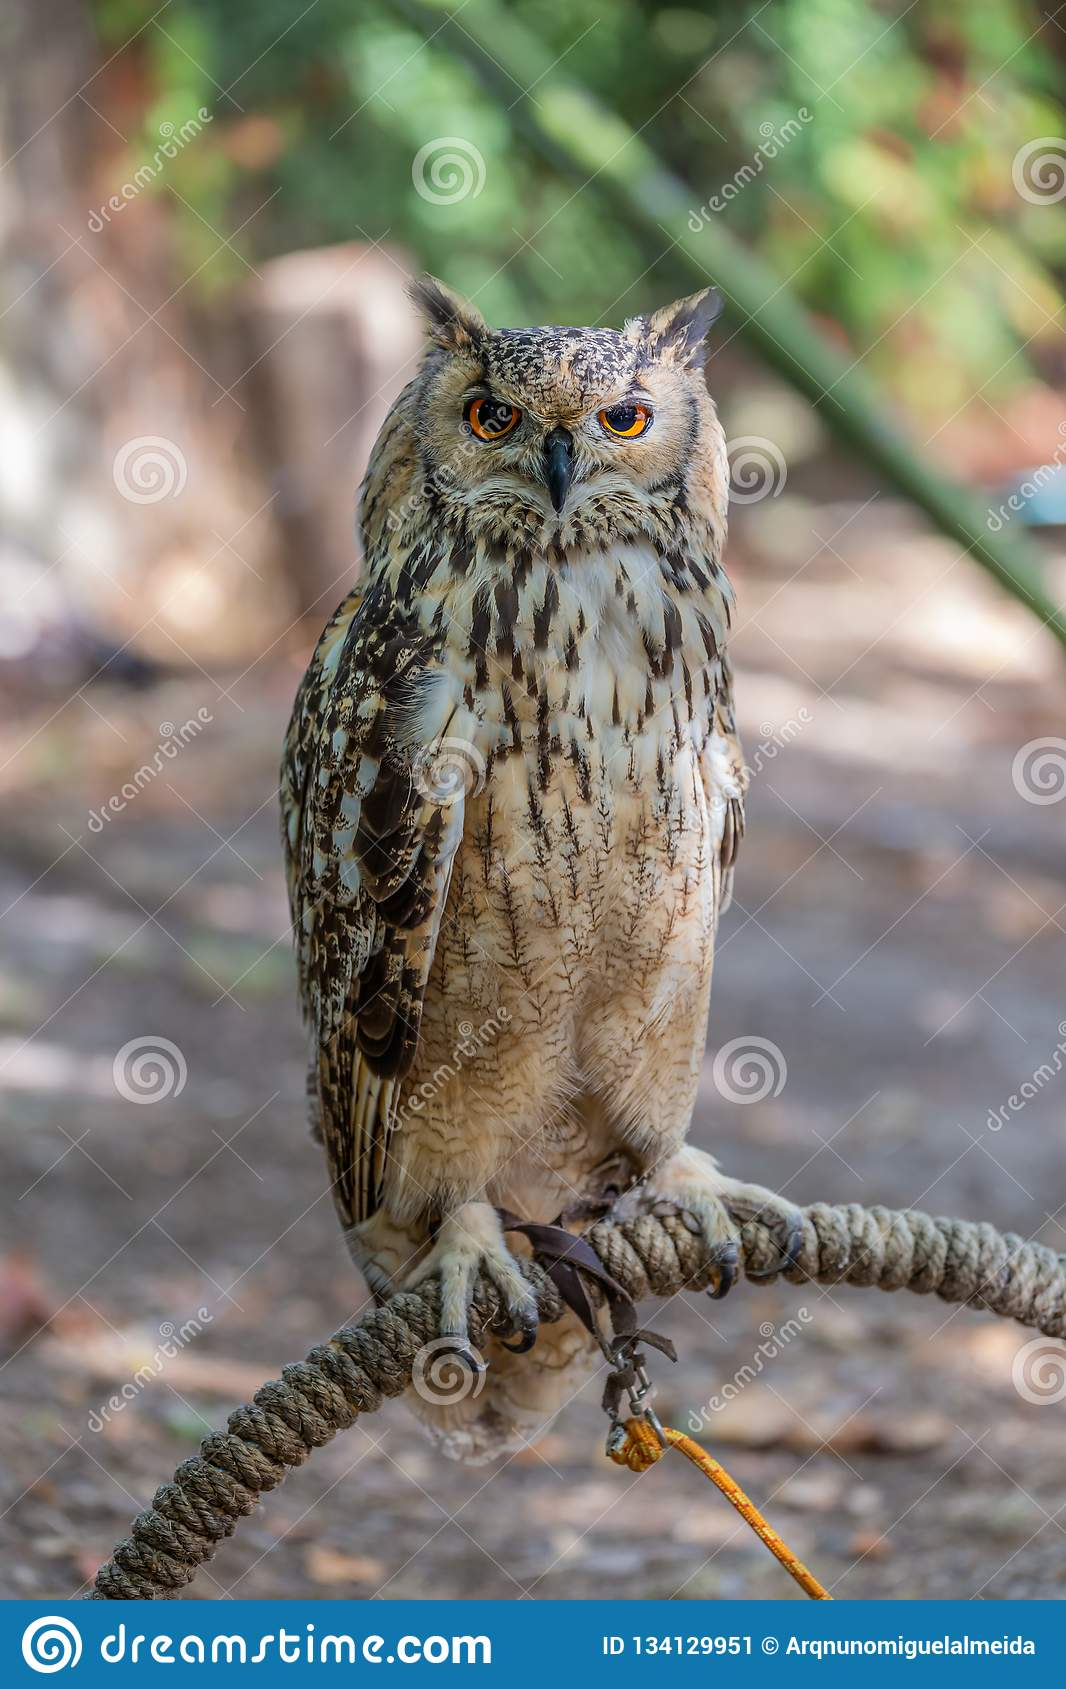 Detailed view of Horned owl, Indian eagle-owl, Bubo bengalensis